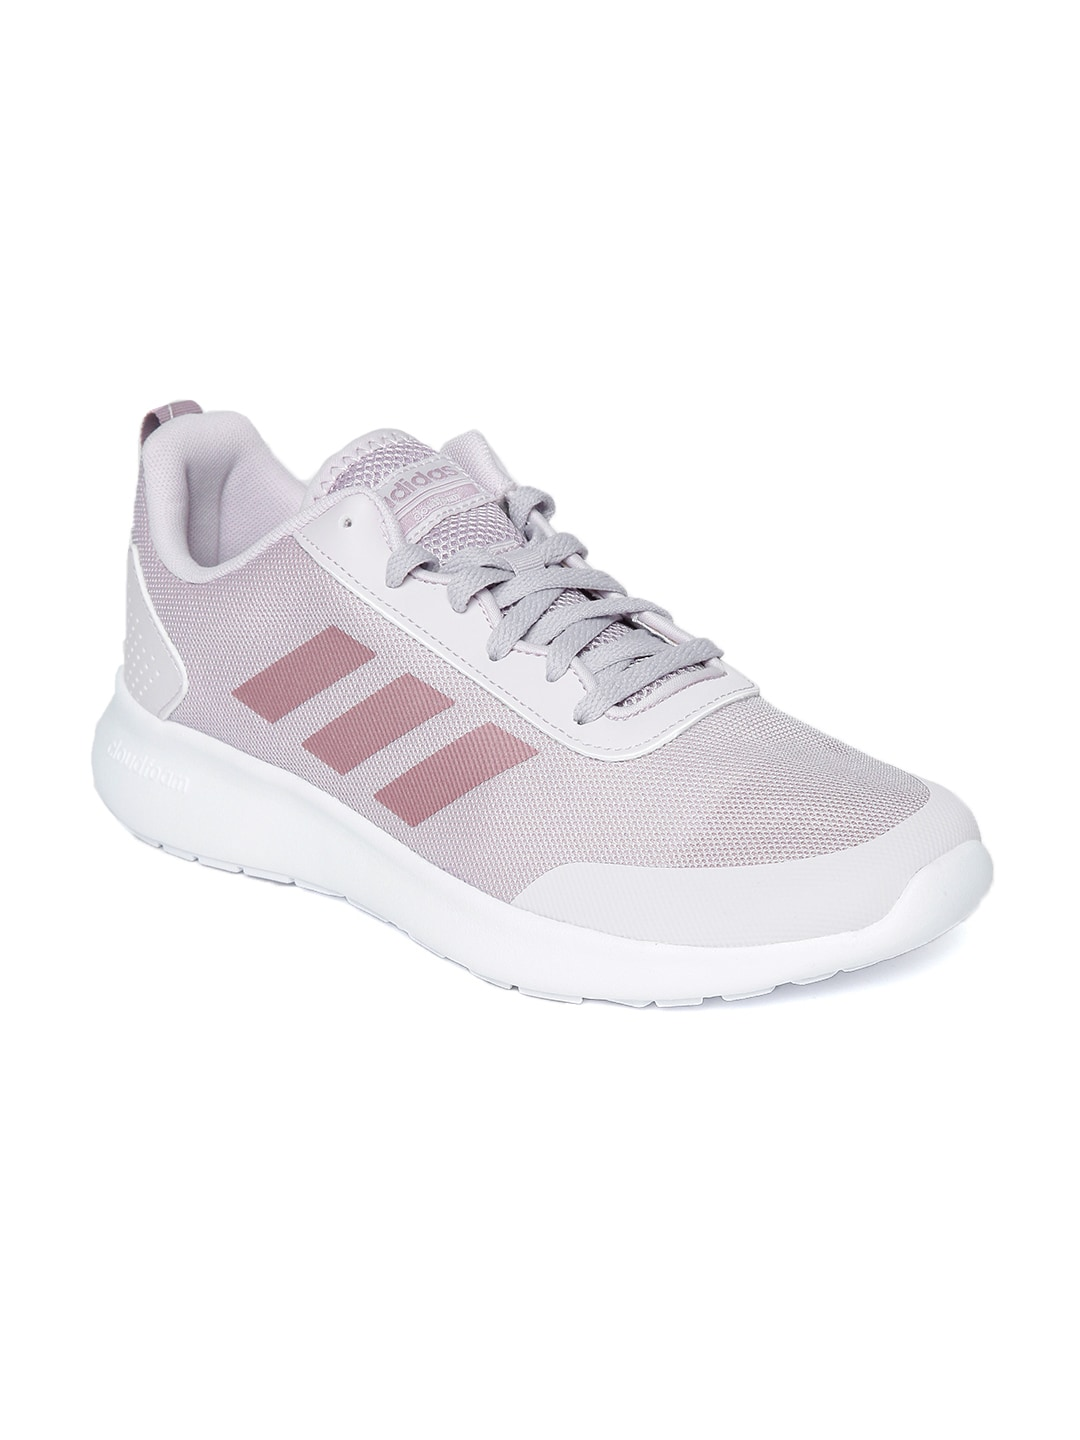 cf7b3fb08dbe43 Element Shoes - Buy Element Shoes online in India